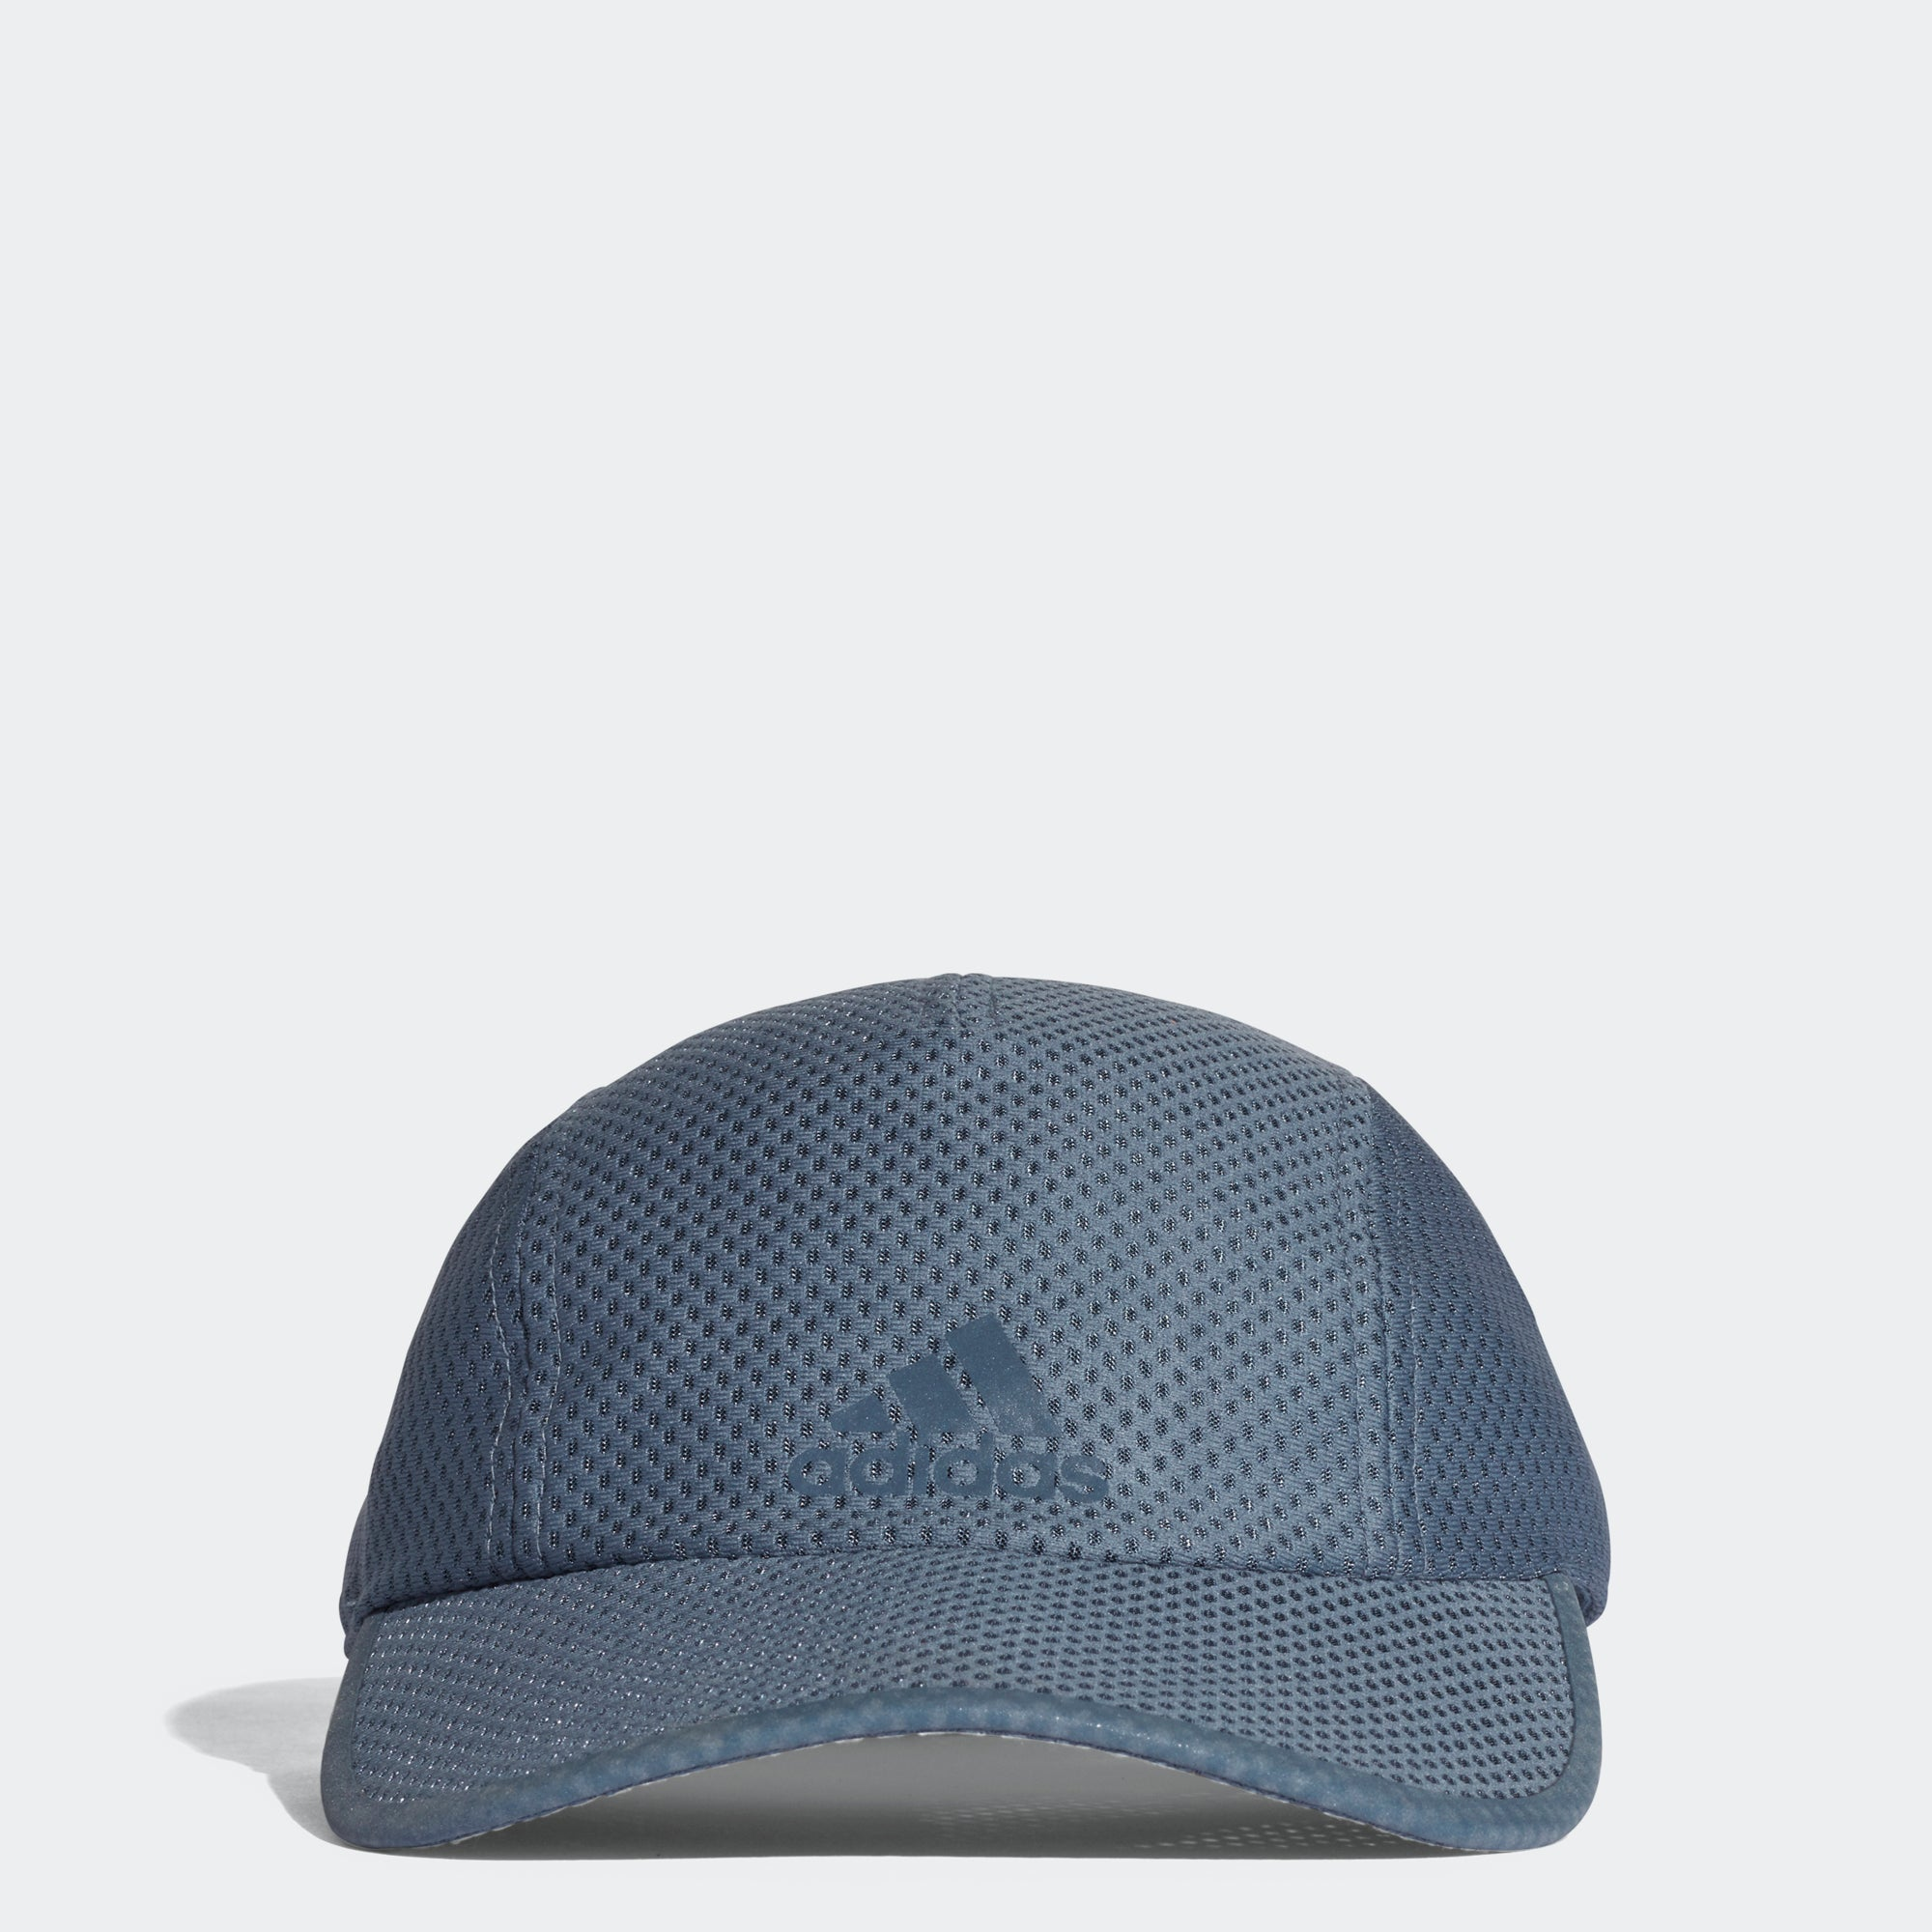 97f7cf7d726 Buy adidas Run Climacool Cap